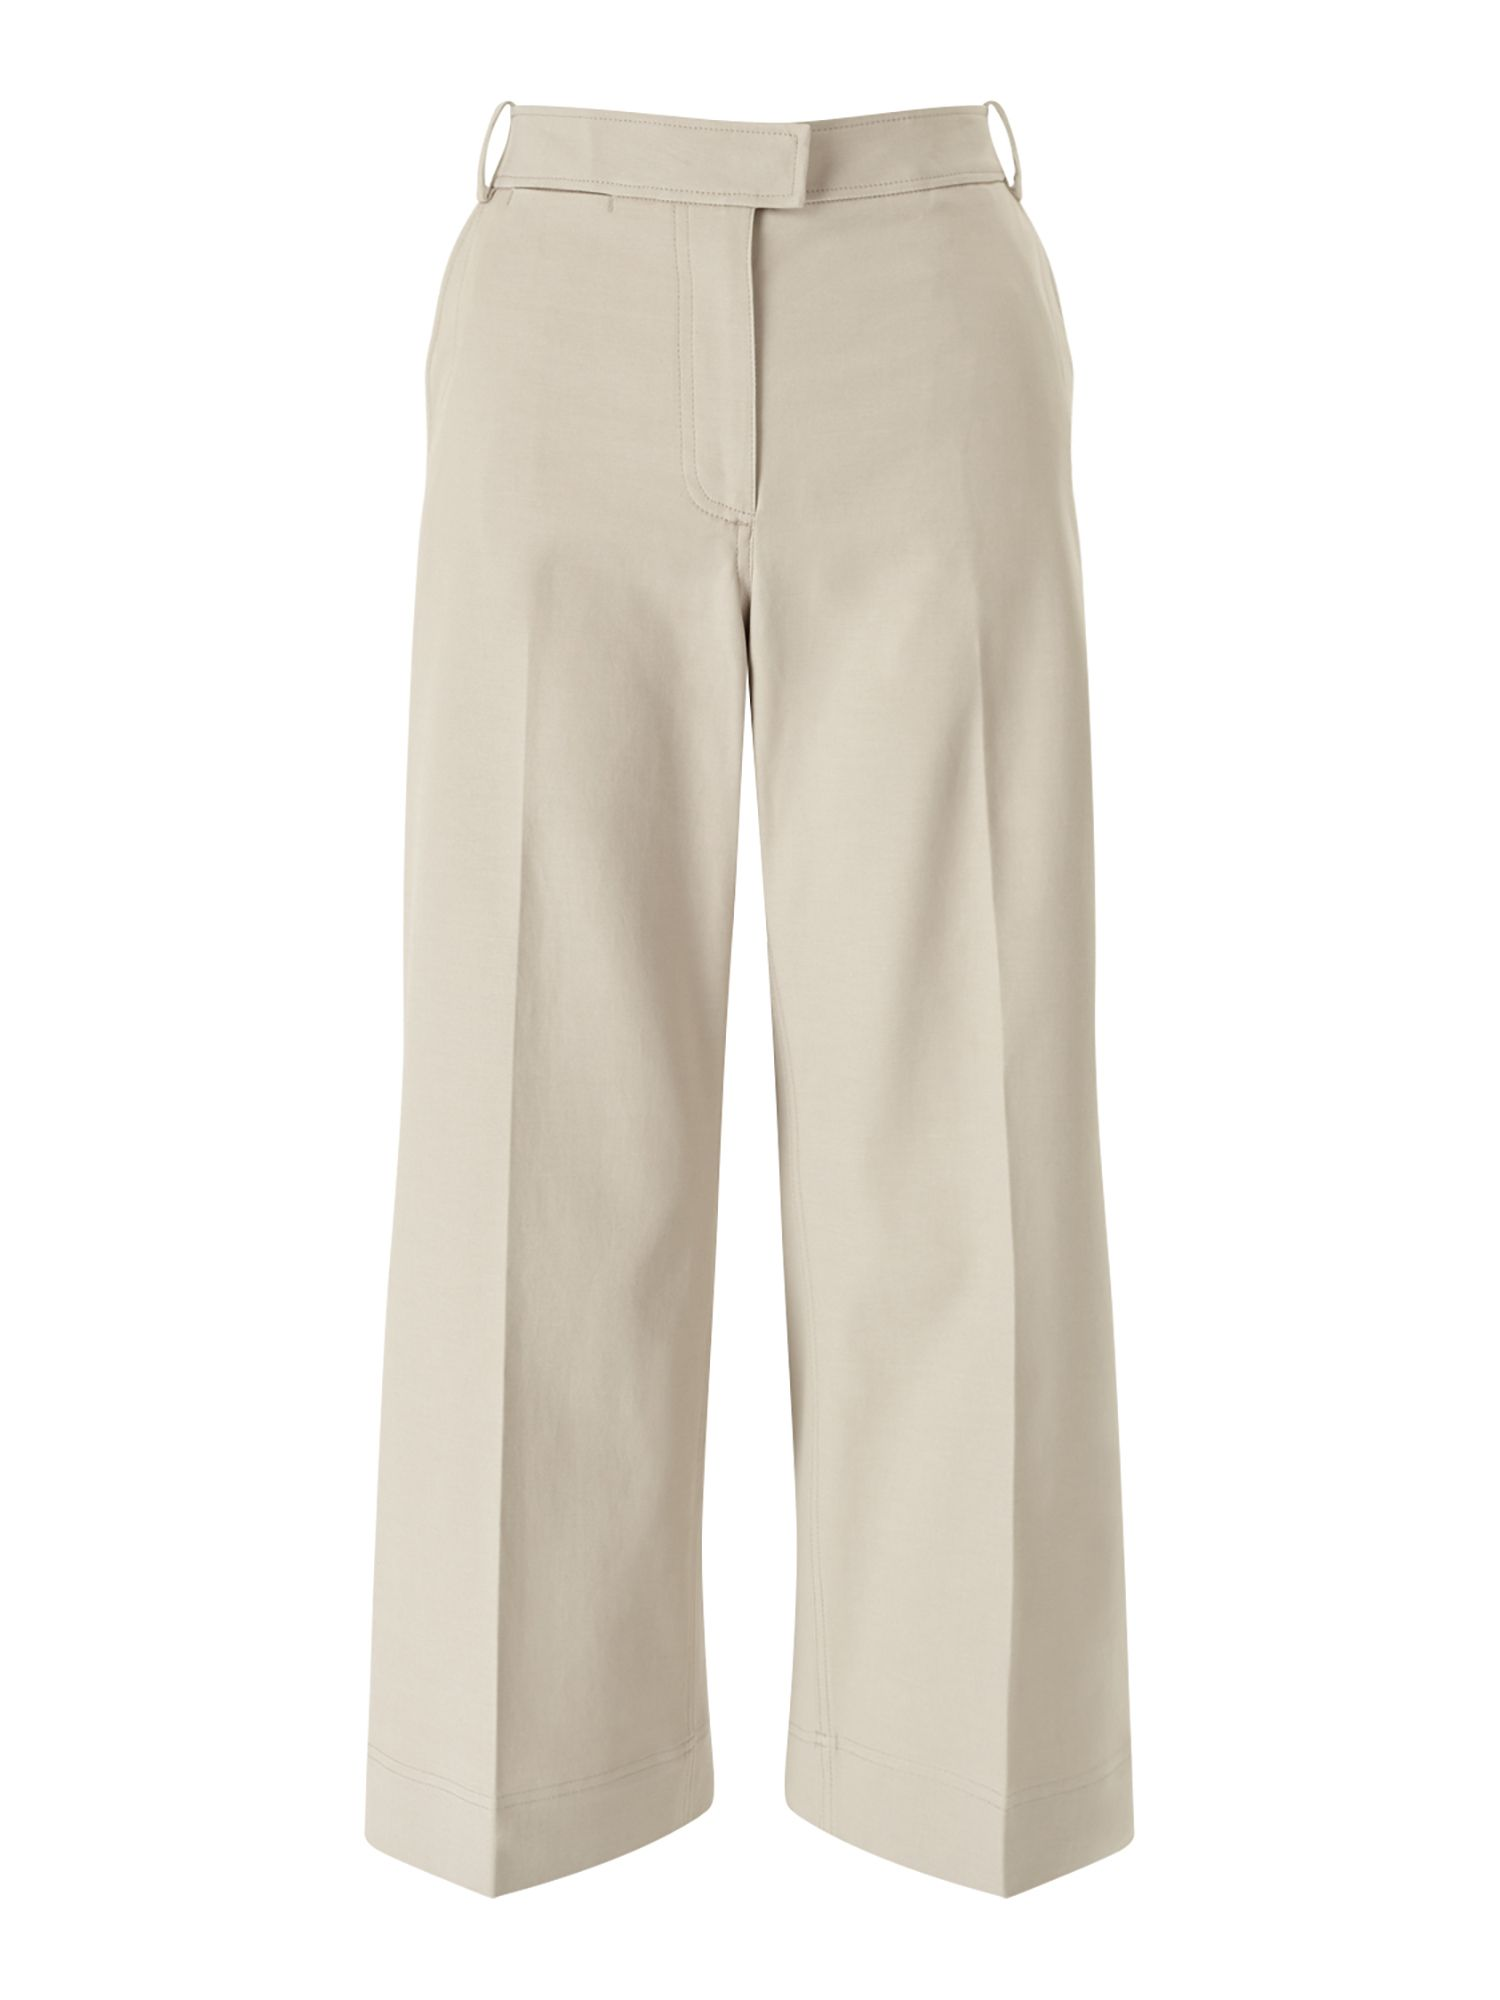 Jigsaw Lux Panama Crop Flare Trouser, Cream